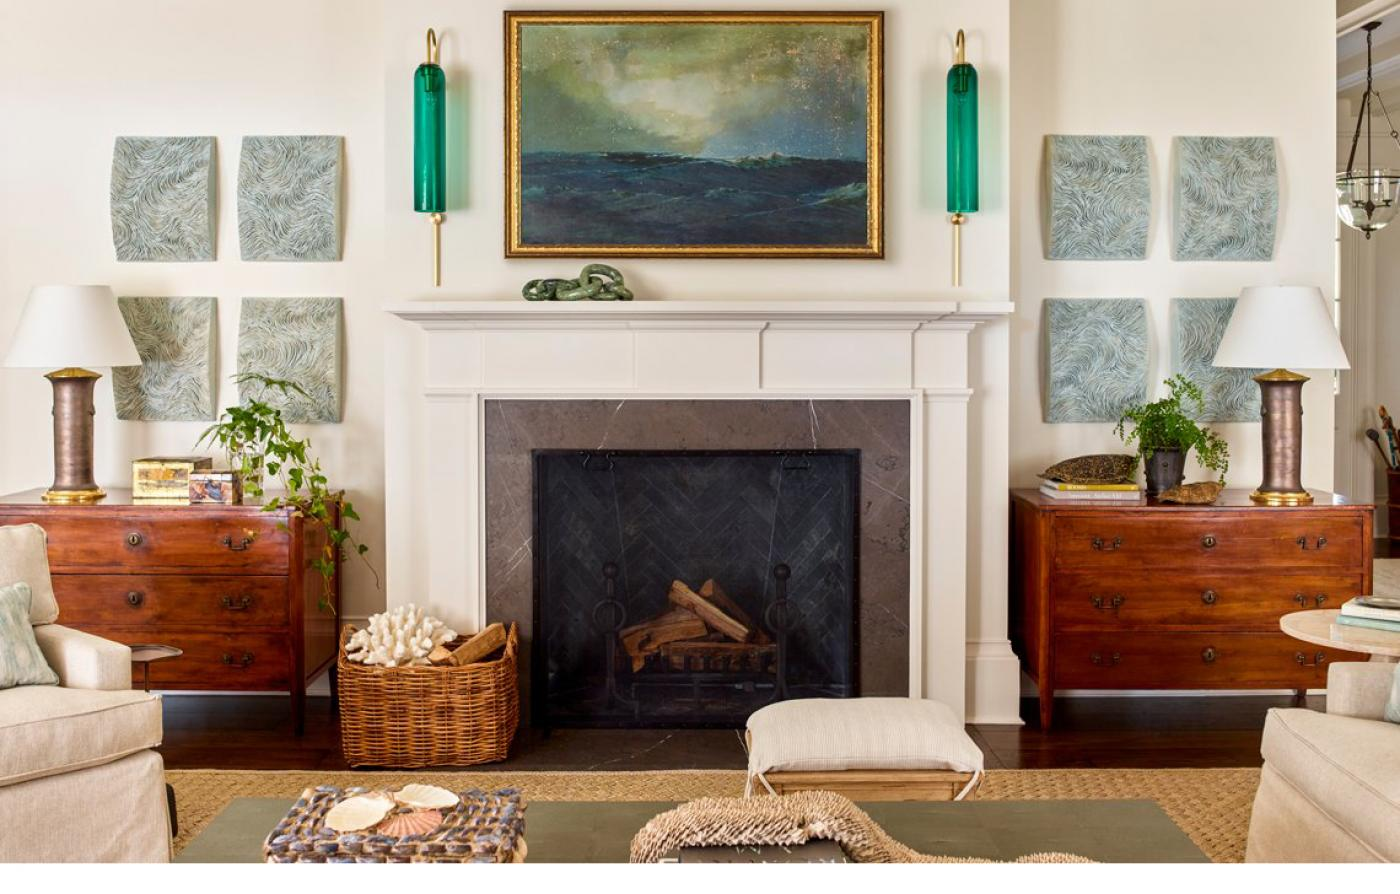 Designer QnA: Tammy Connor Translates Memories into Meaningful Homes